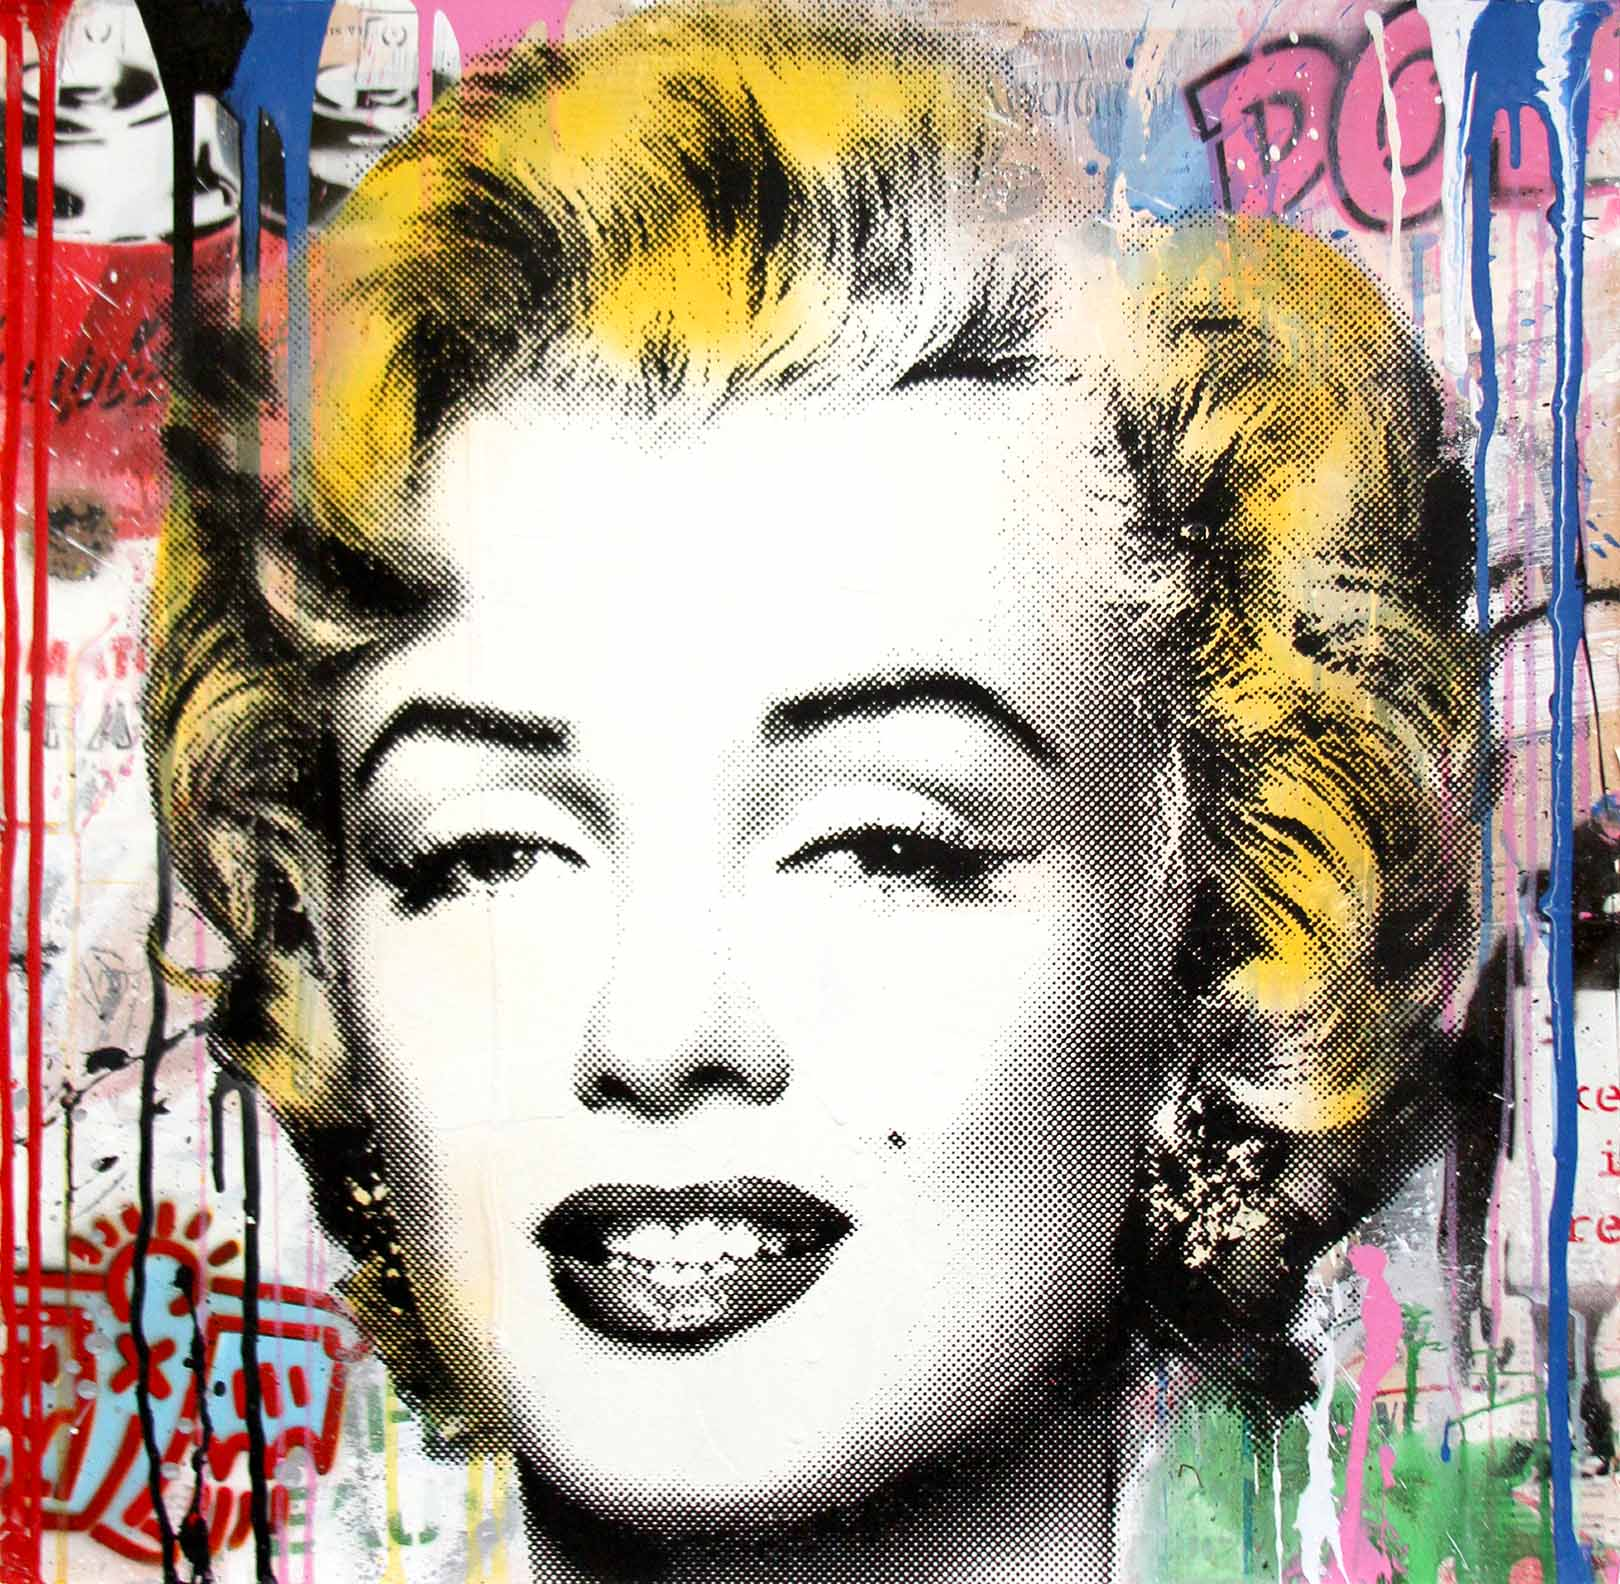 Mr. Brainwash - Marilyn (Mixed Media)